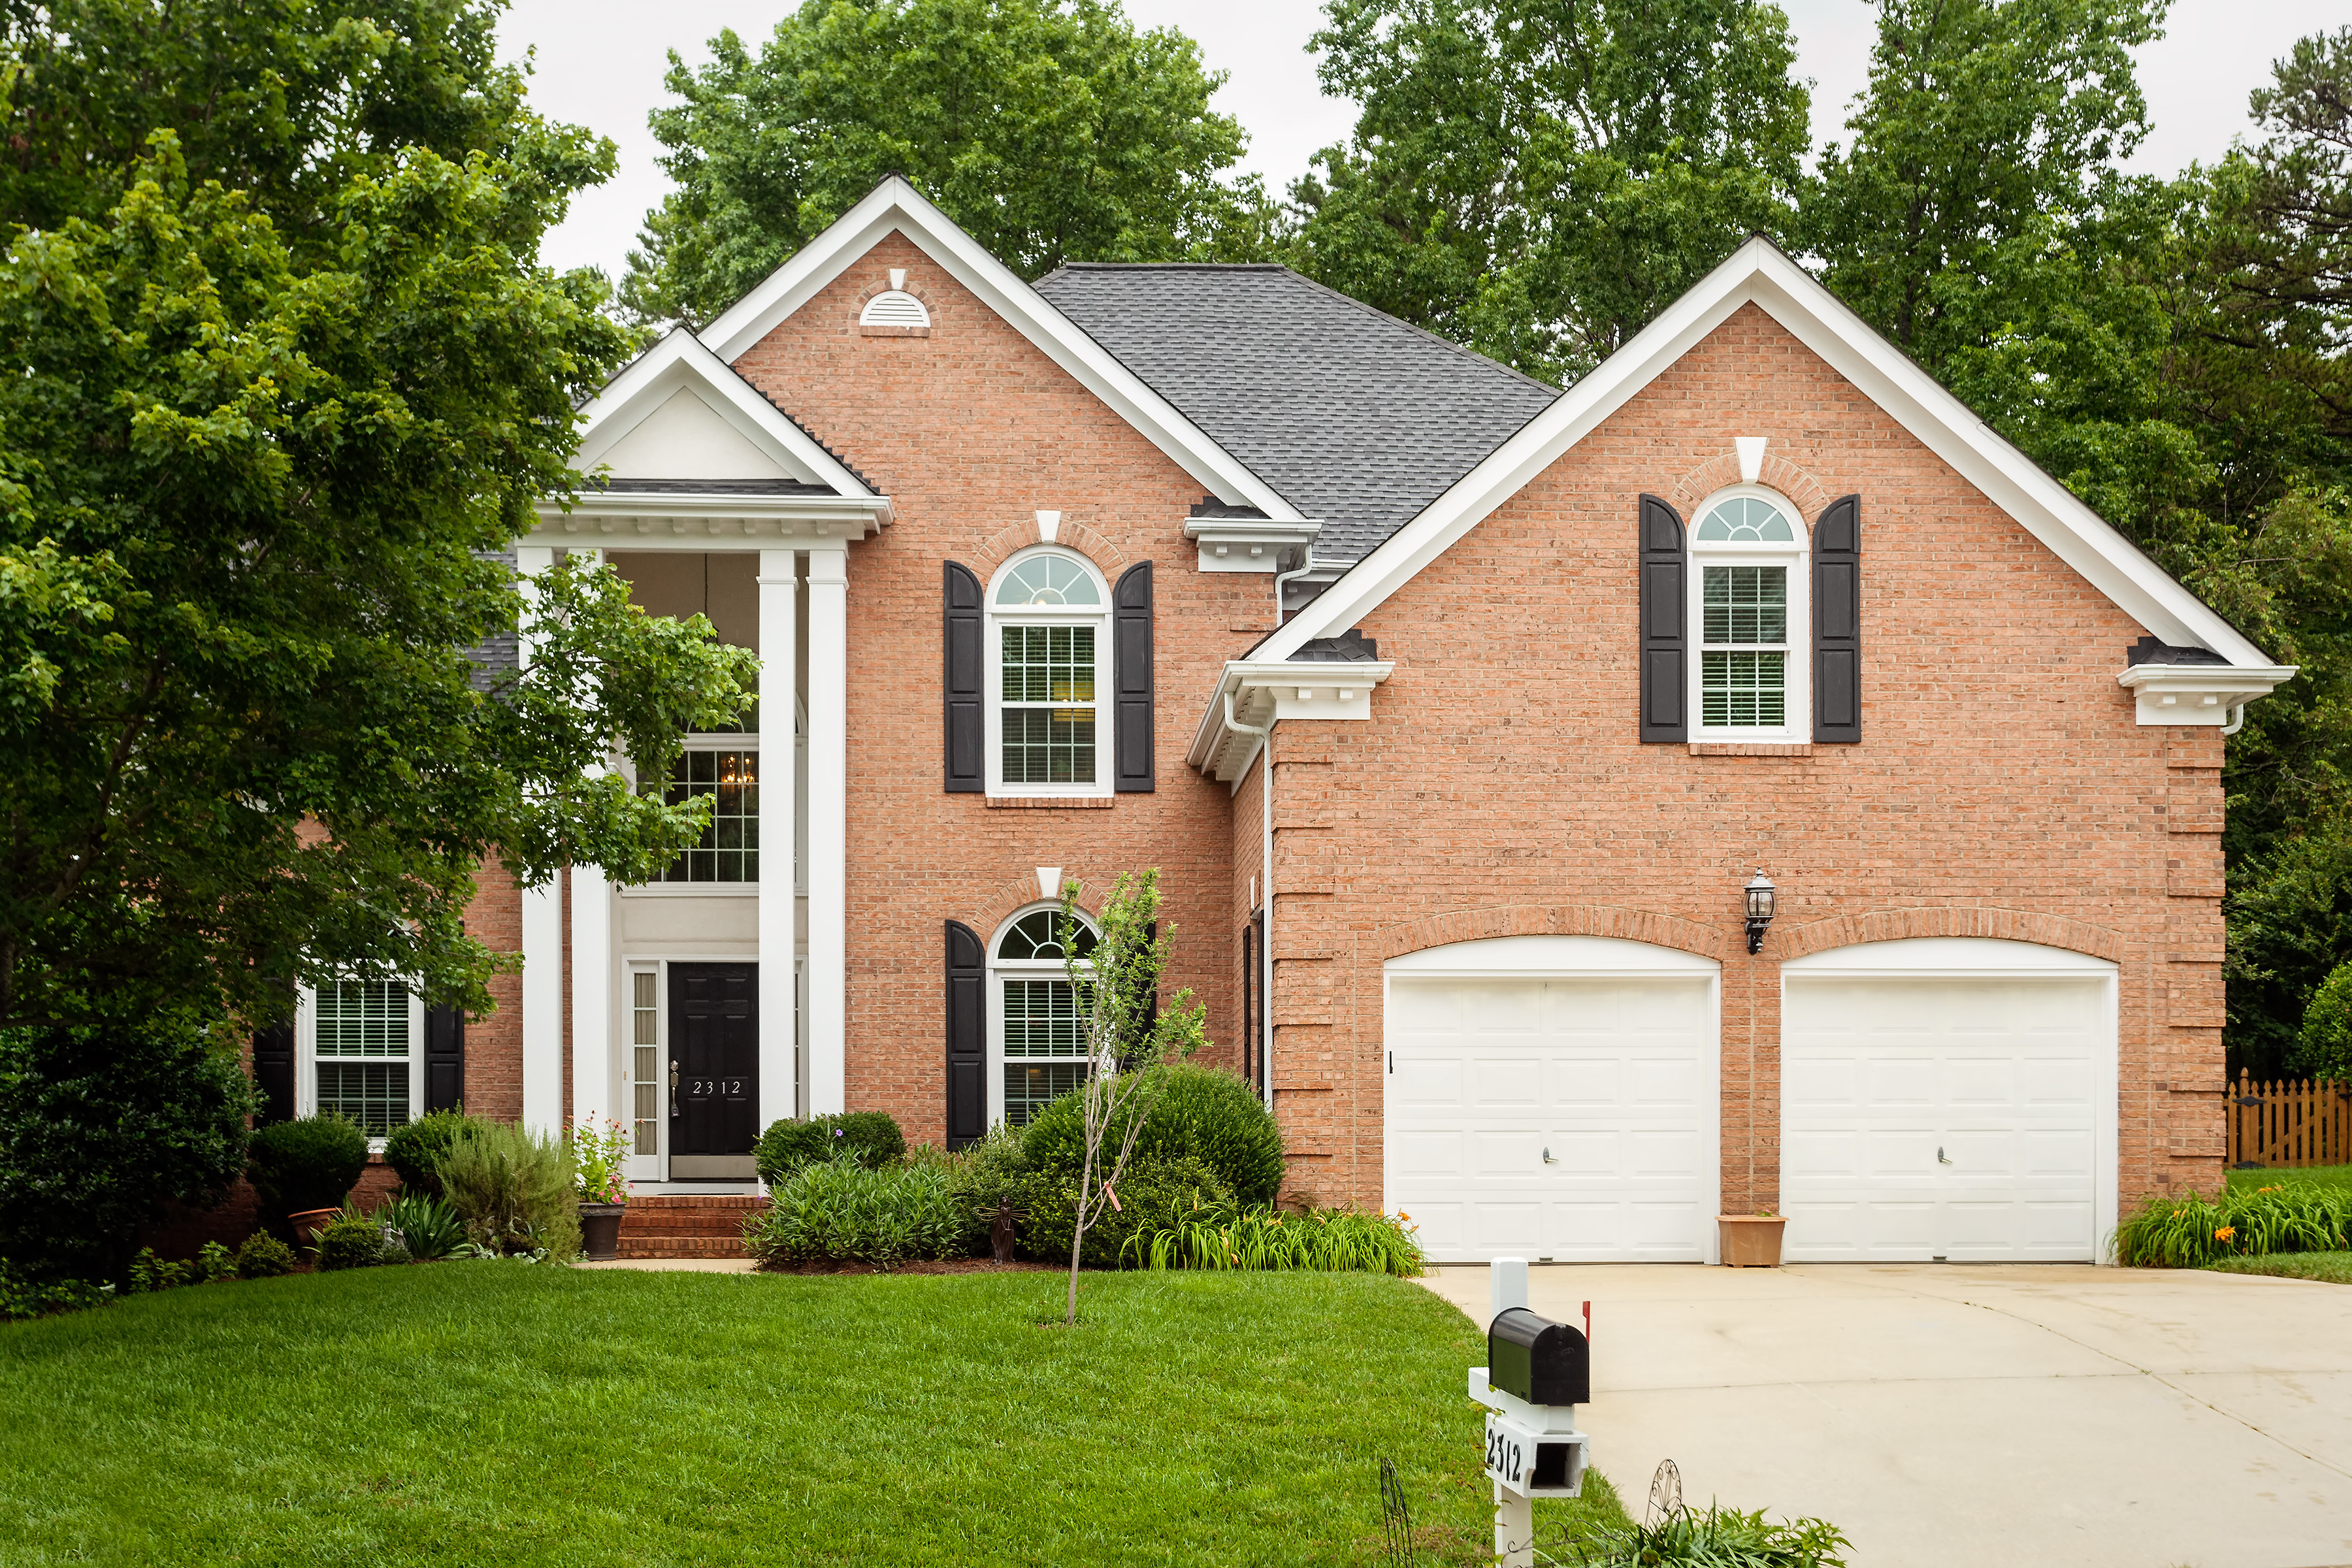 Just Listed By Don Anthony Realty 5 Bedroom 3 5 Bath Home For Sale In Charlotte Nc In